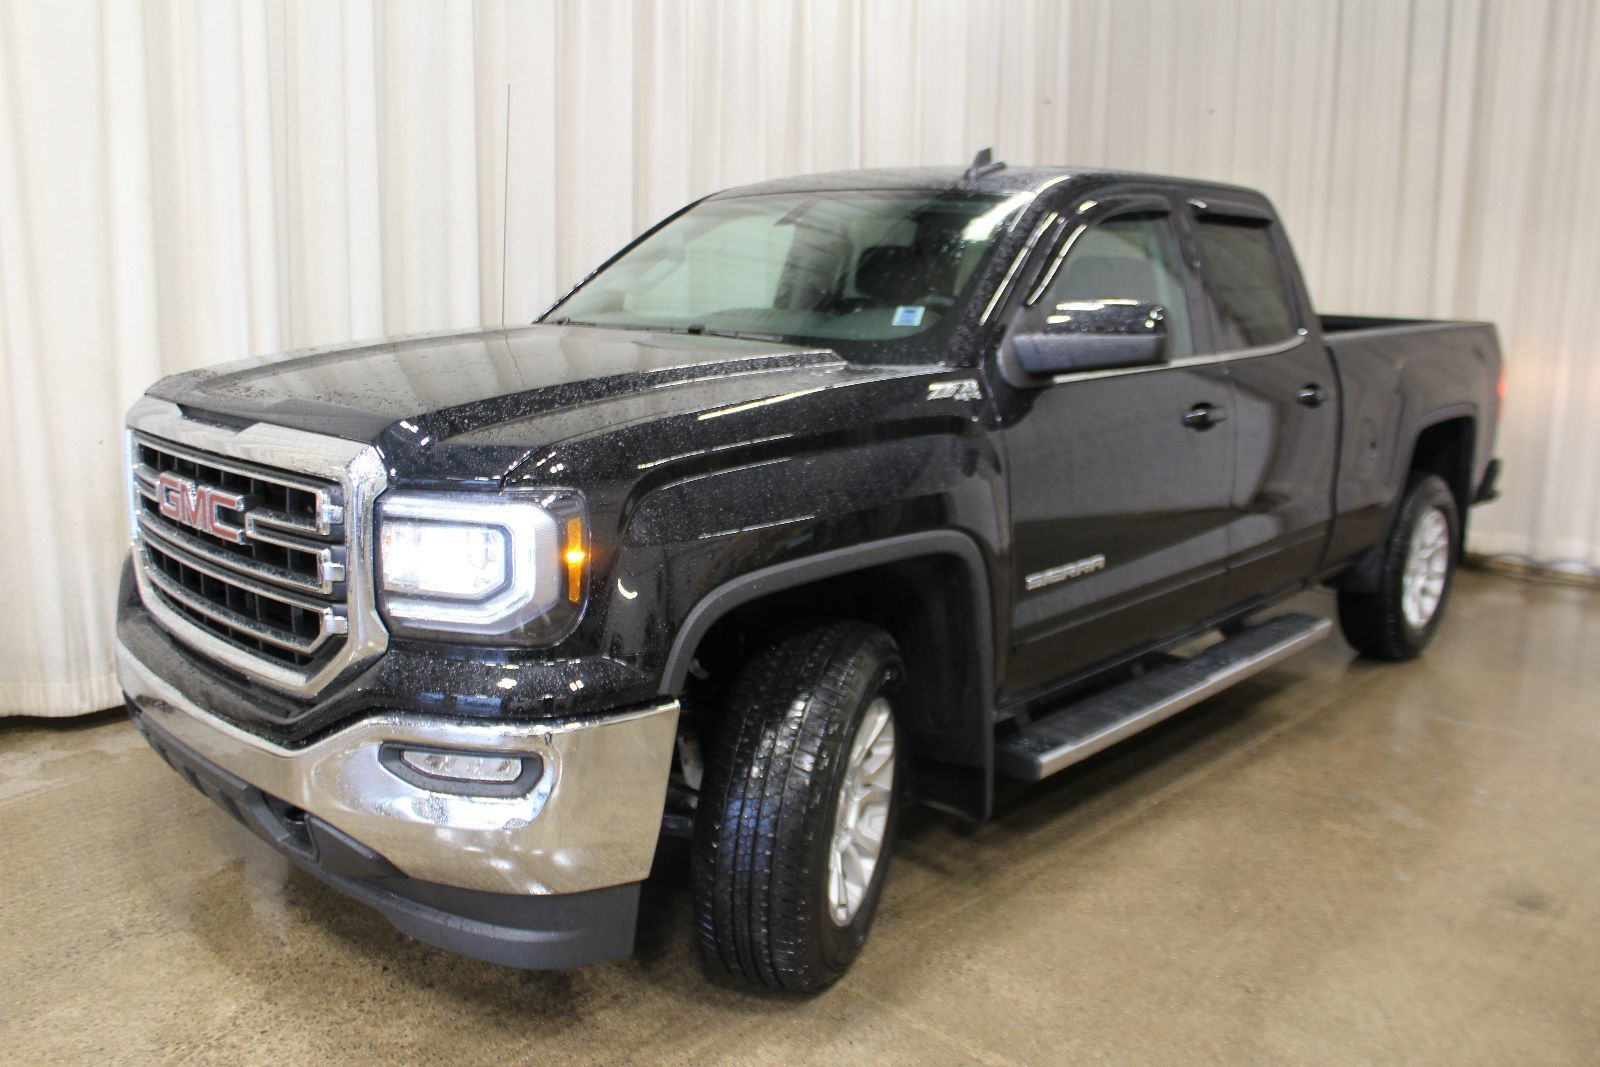 new 2017 gmc sierra 1500 z71 sle 5 3l 8 cyl automatic 4x4 extended cab in middleton g17656. Black Bedroom Furniture Sets. Home Design Ideas